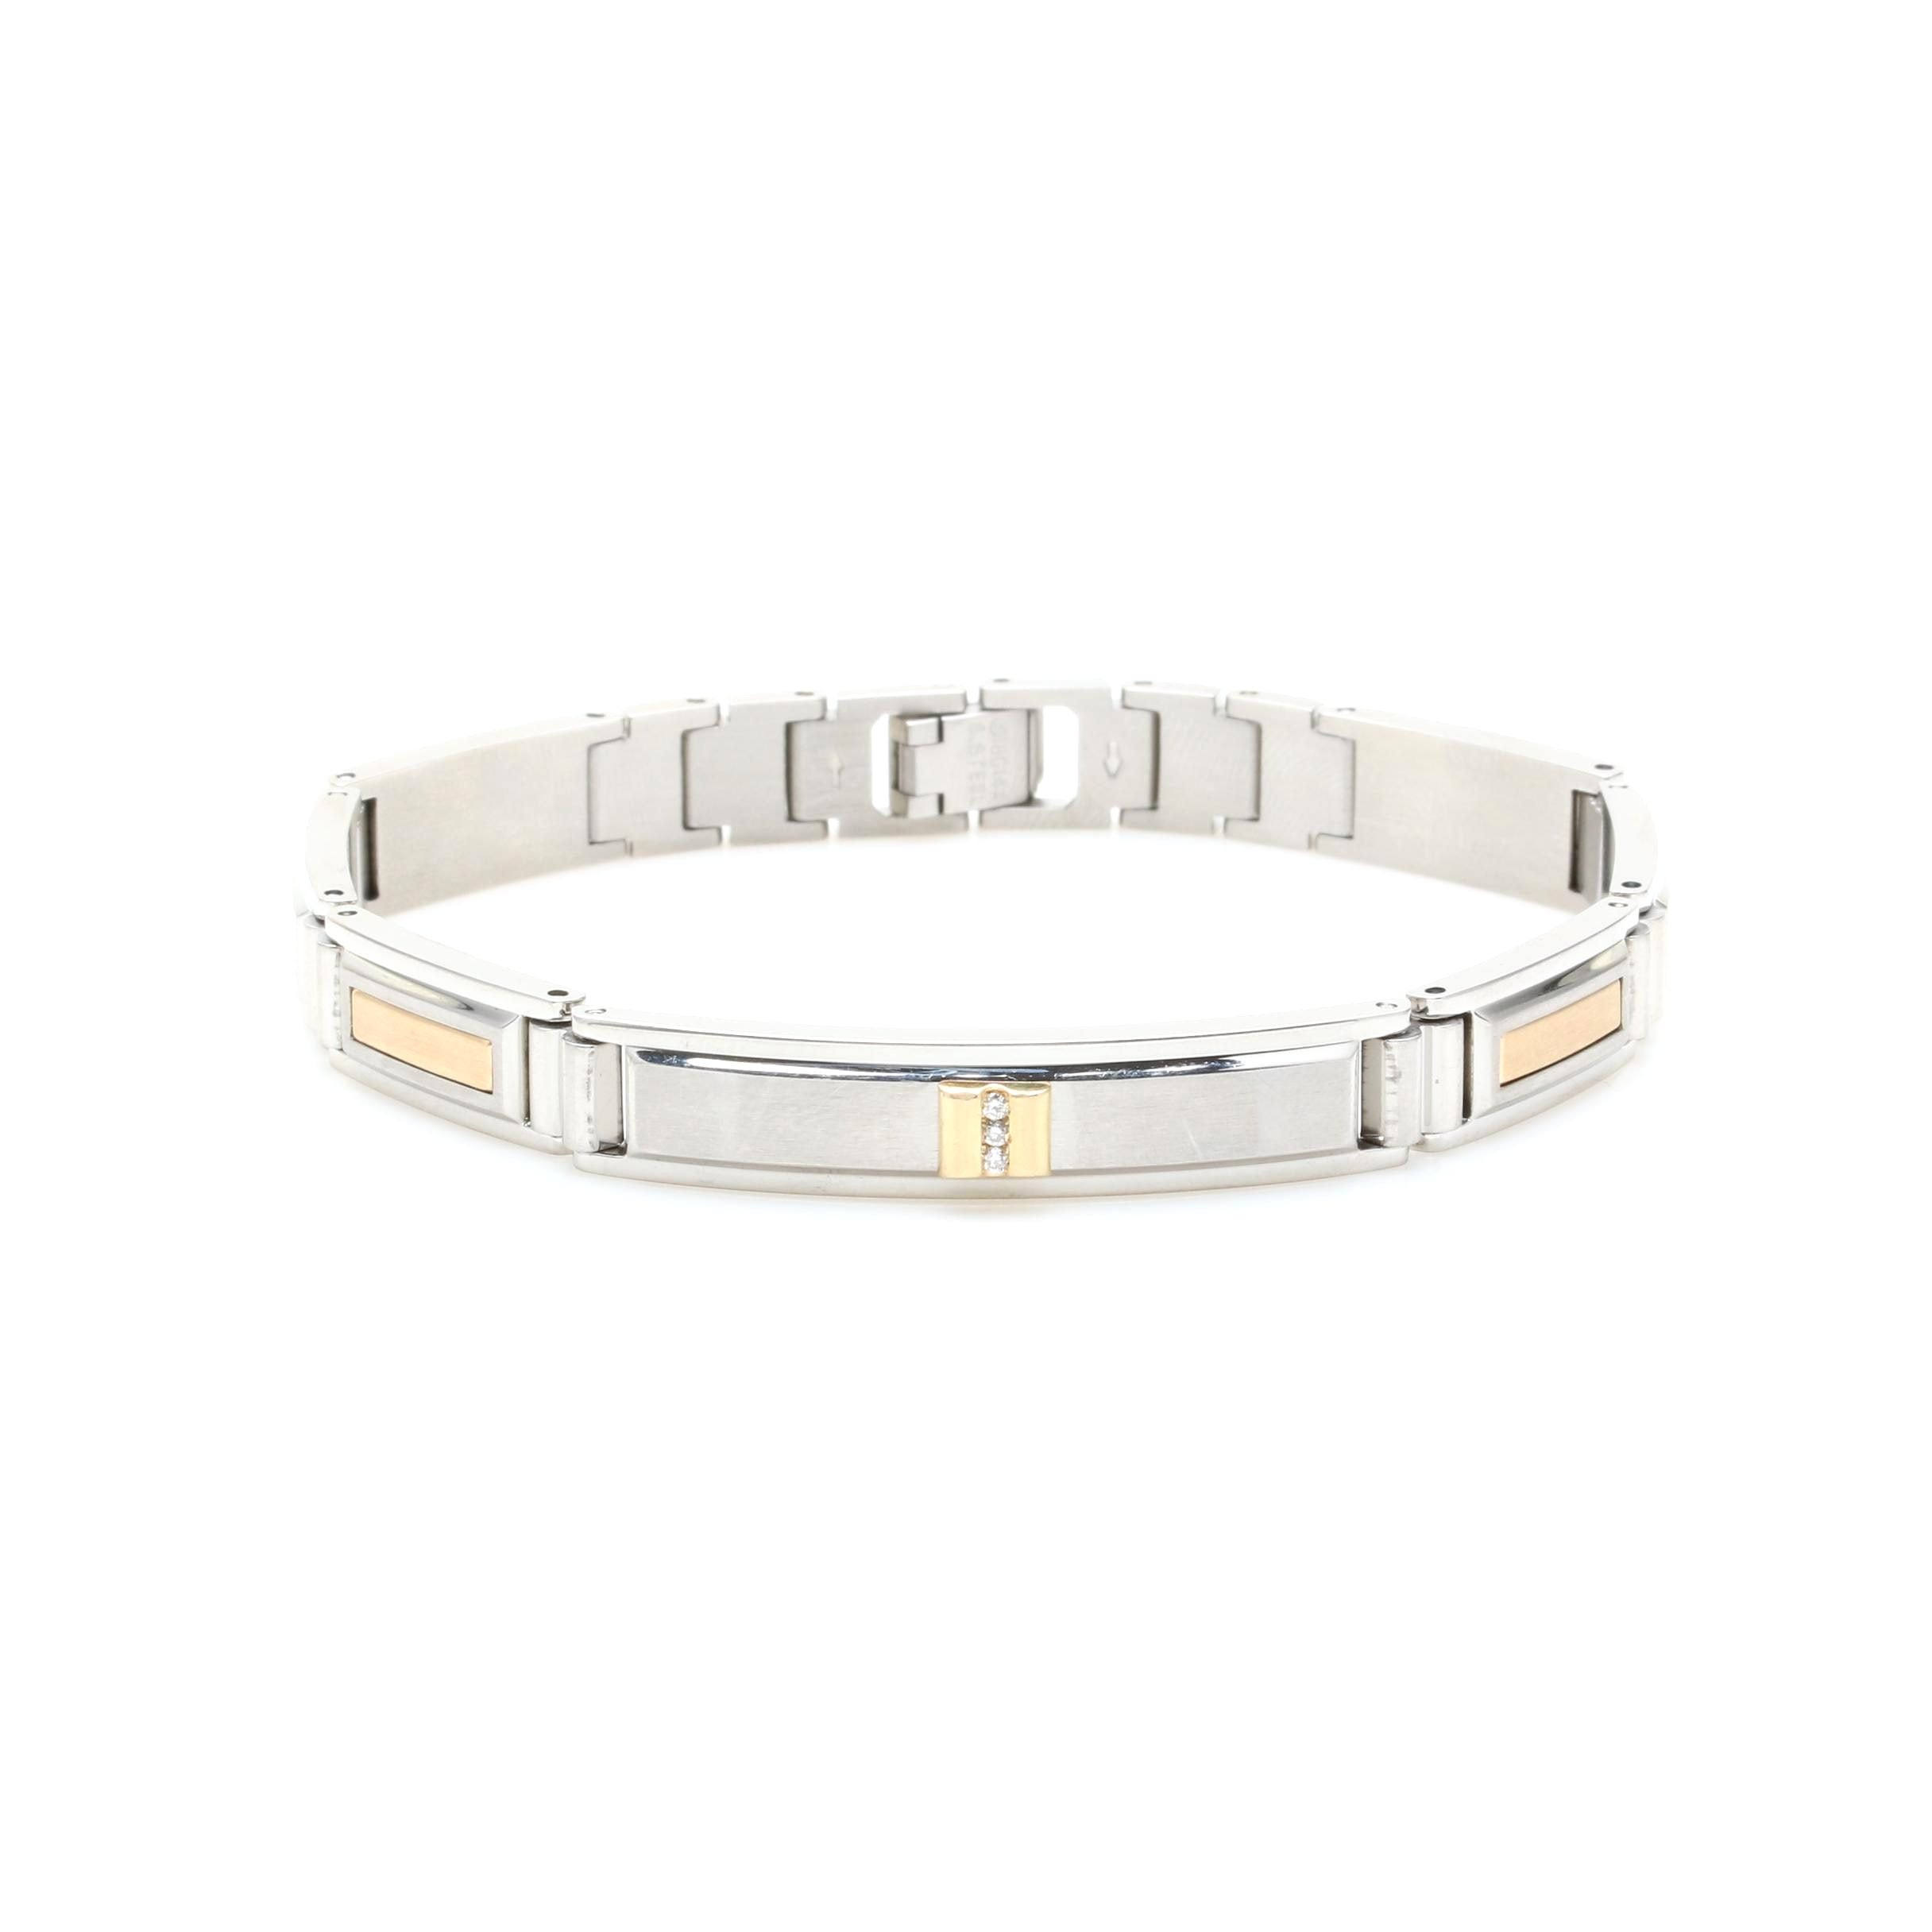 14K Yellow Gold and Stainless Steel Diamond Bracelet